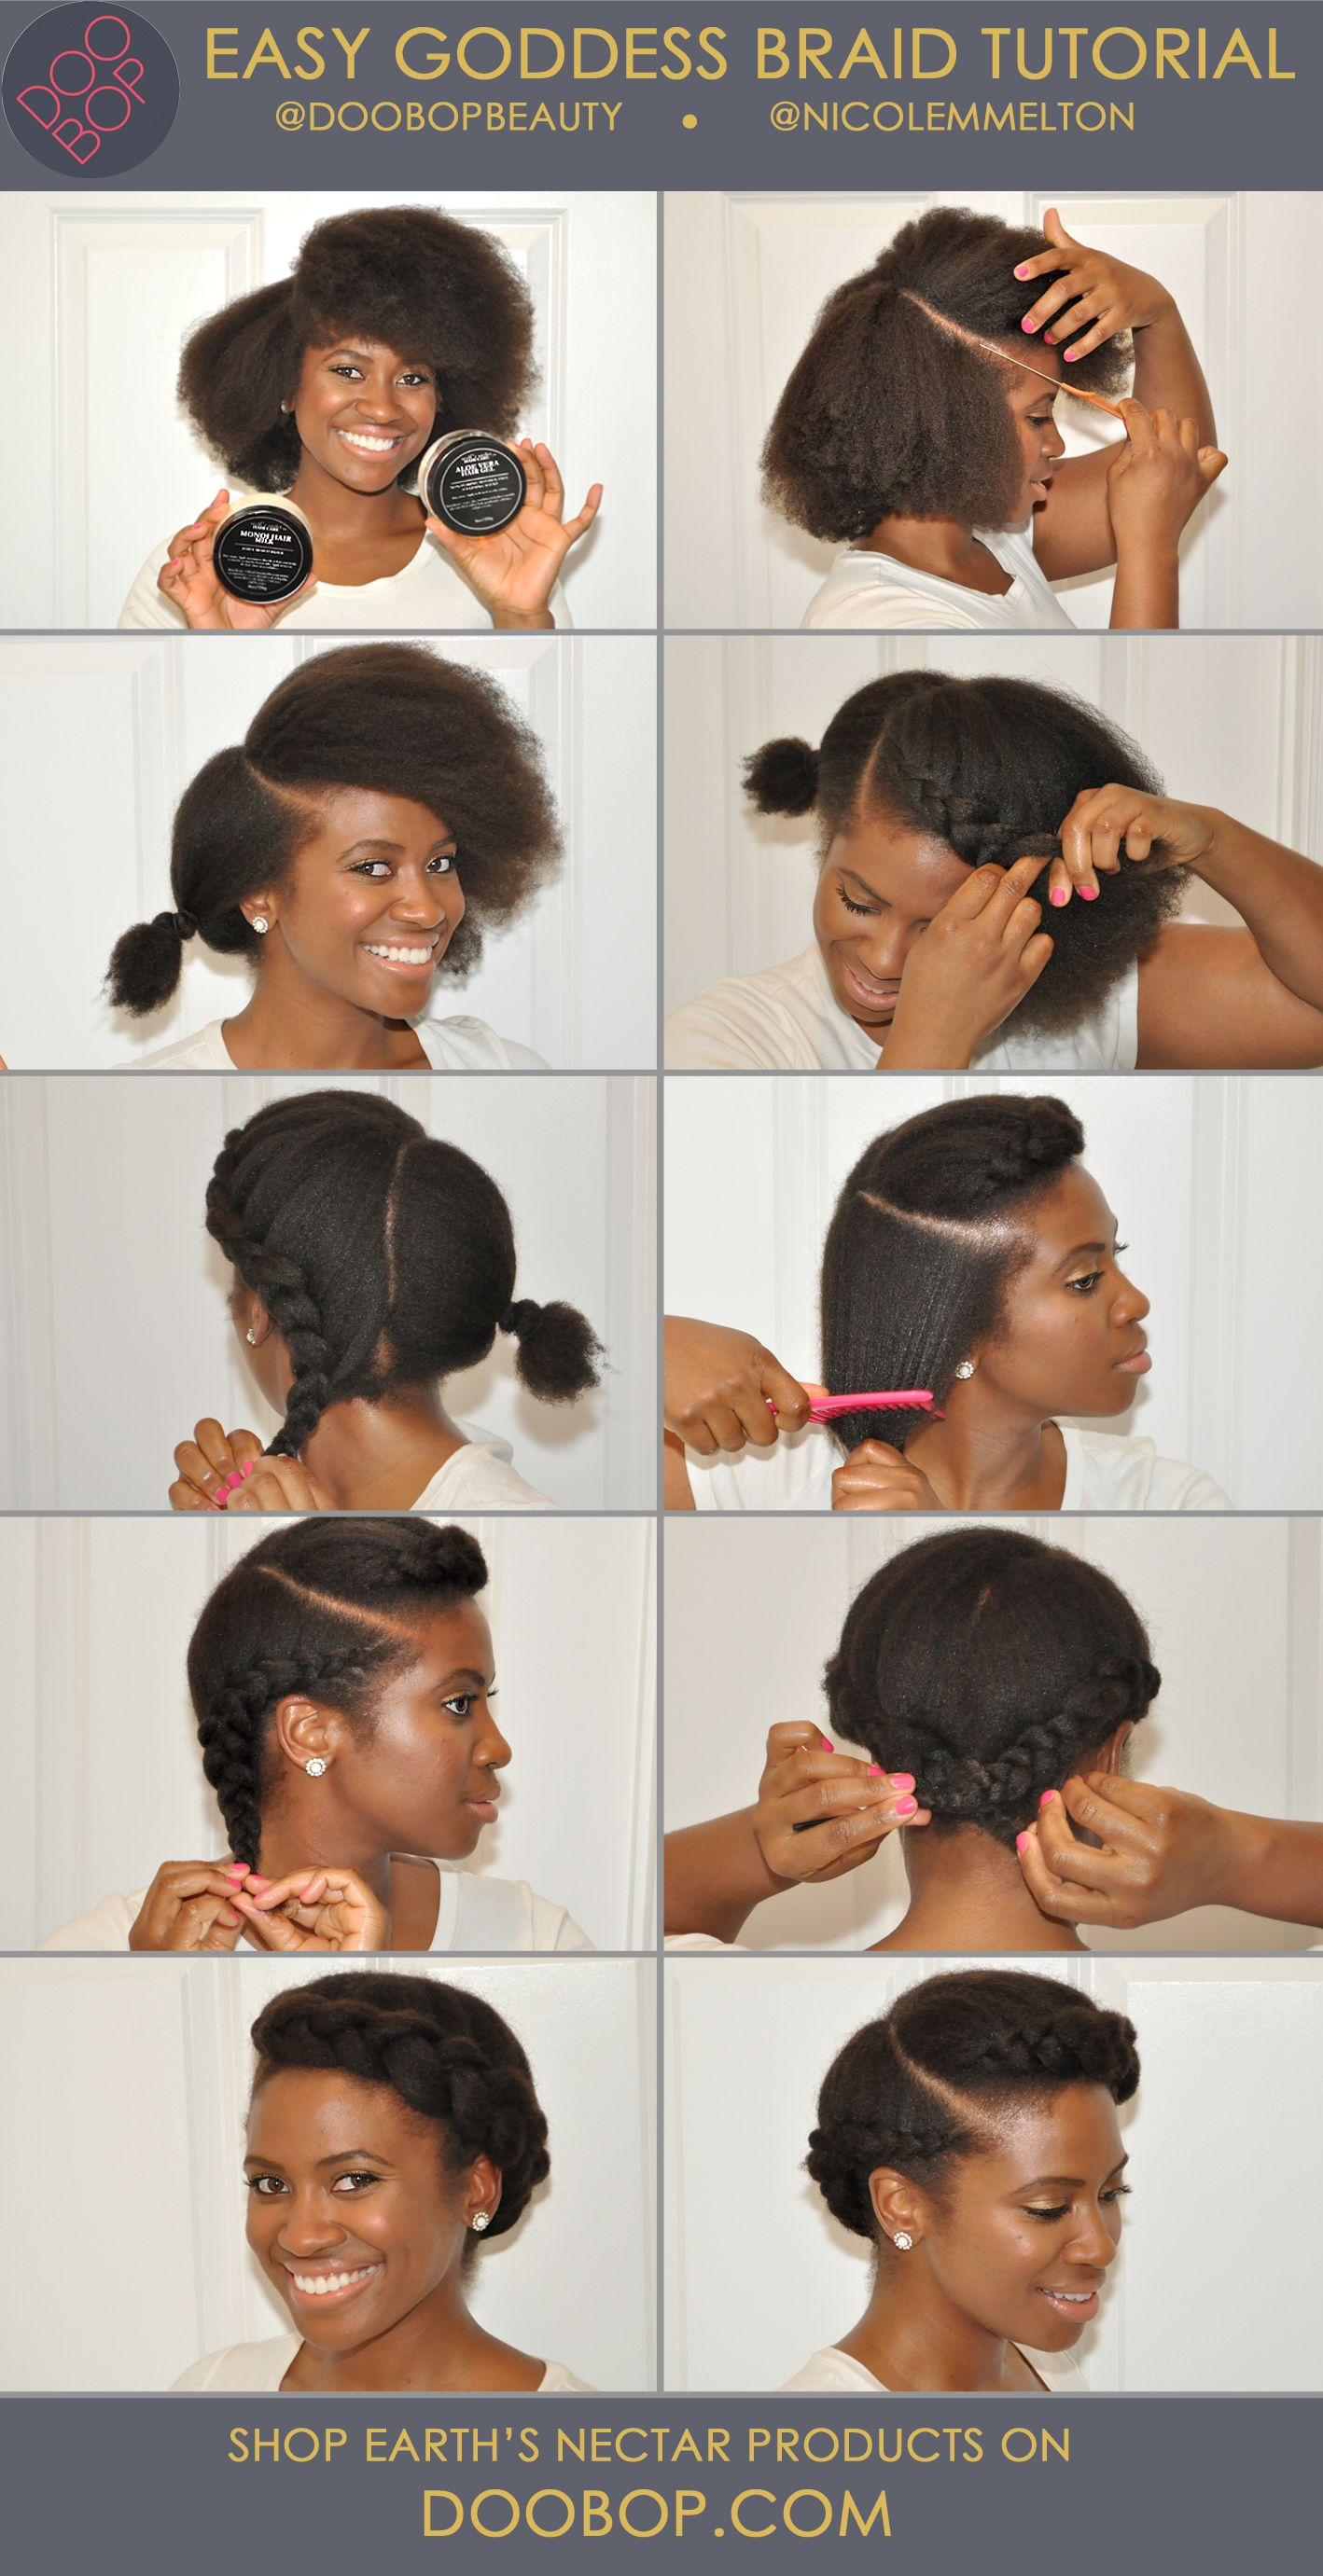 Easy Natural Hair How To Goddess Braid with Earth s Nectar Hair